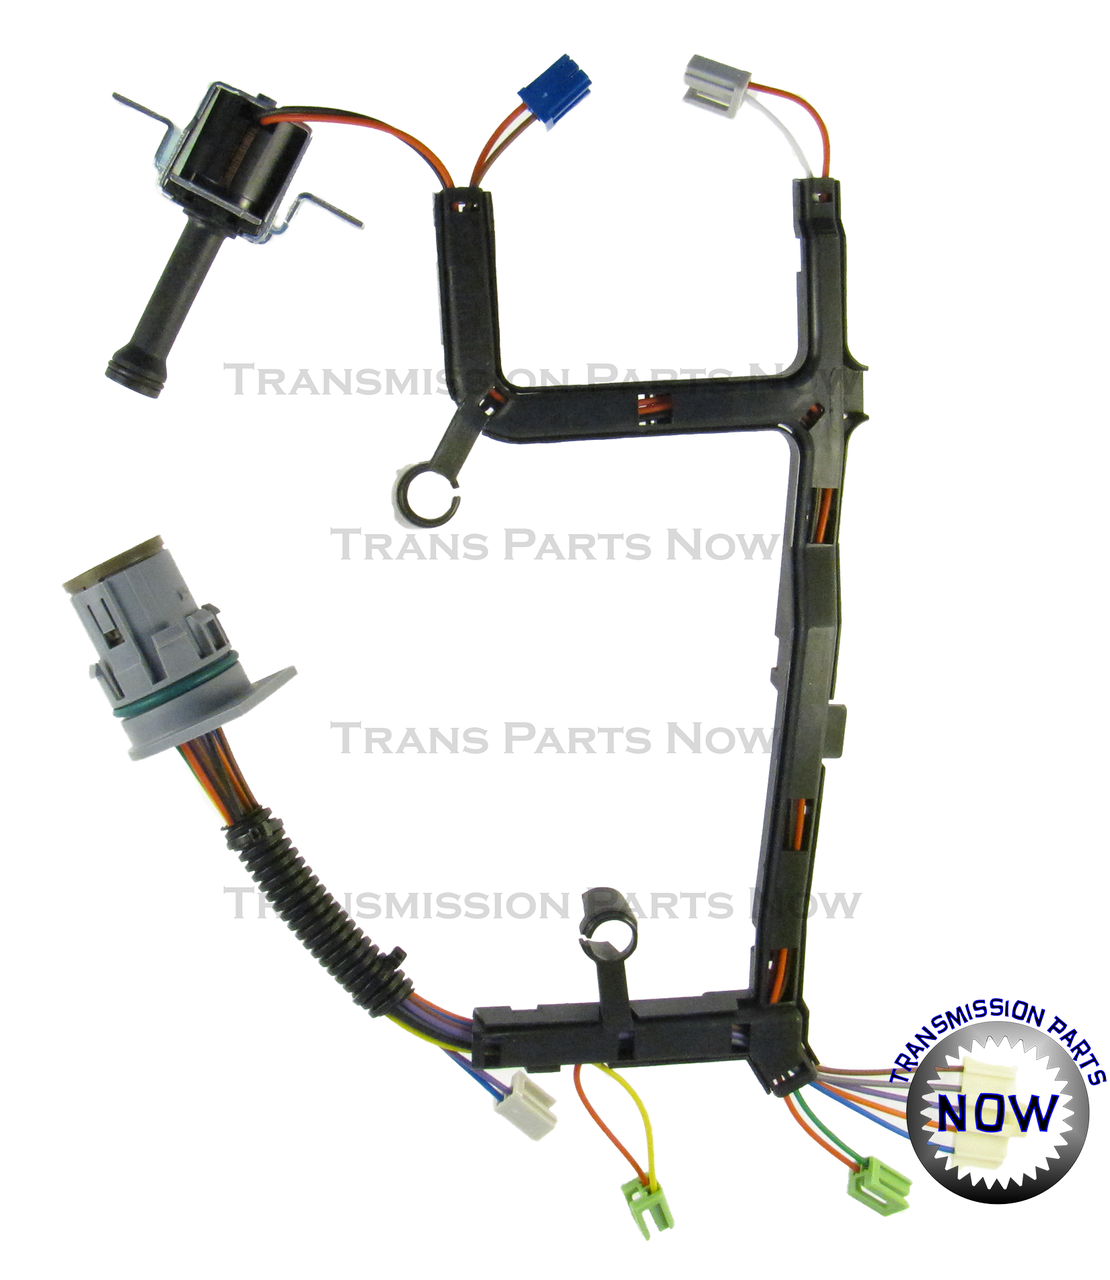 2003 06 4l60e Wire Harness Rostra Transmission Parts Now Harness This Or That Questions Chevrolet Parts